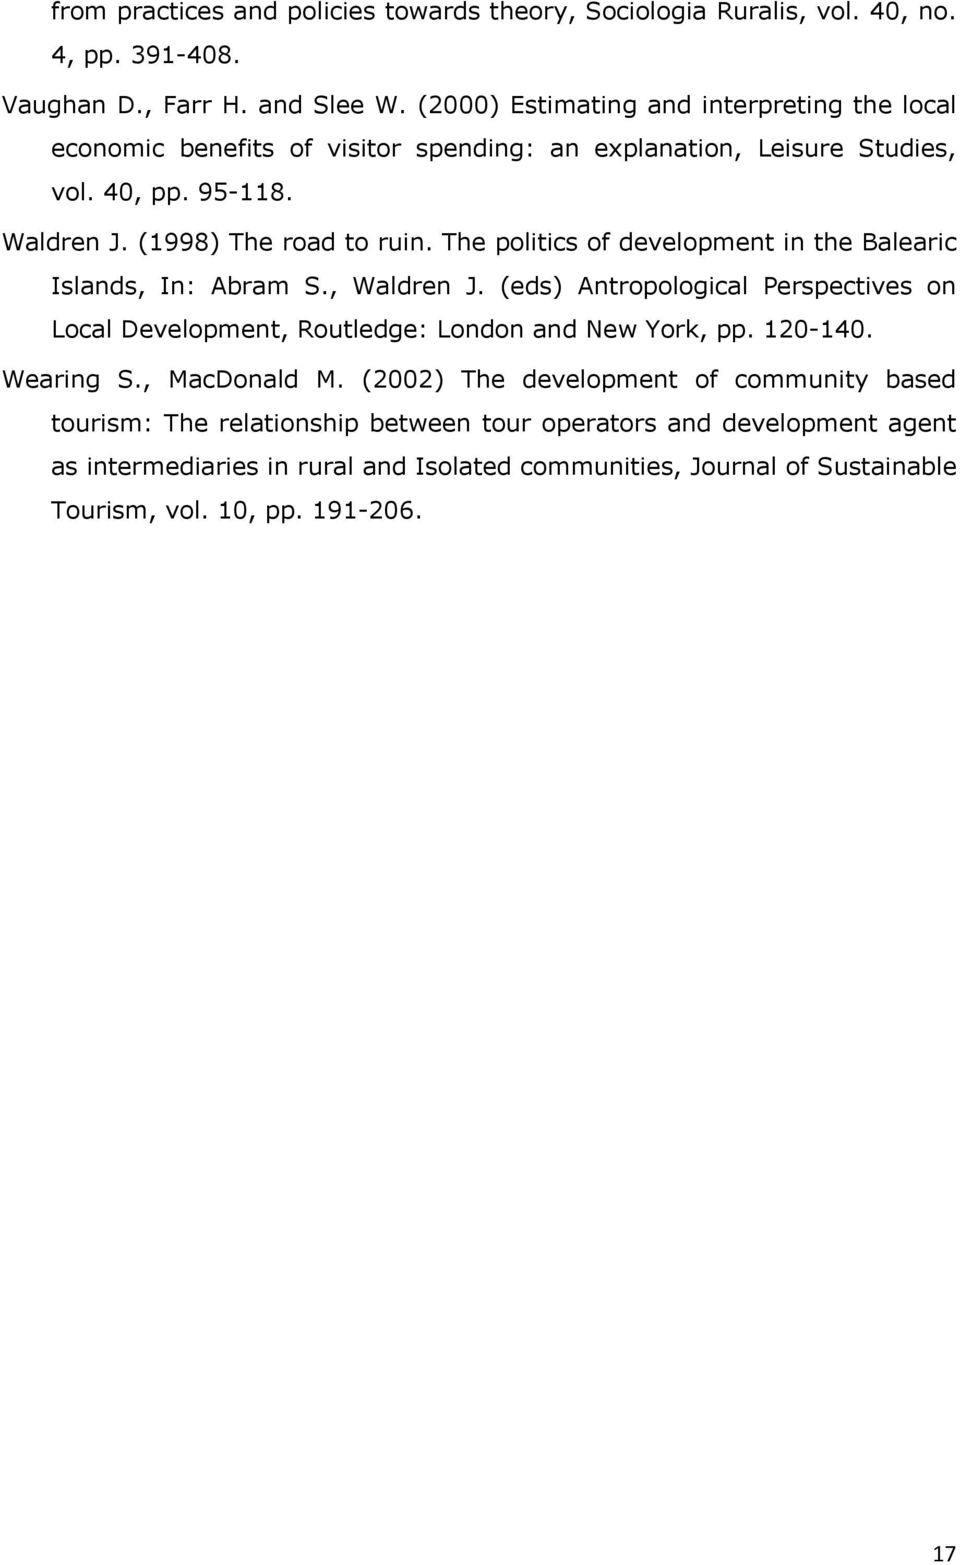 The politics of development in the Balearic Islands, In: Abram S., Waldren J. (eds) Antropological Perspectives on Local Development, Routledge: London and New York, pp. 120-140.